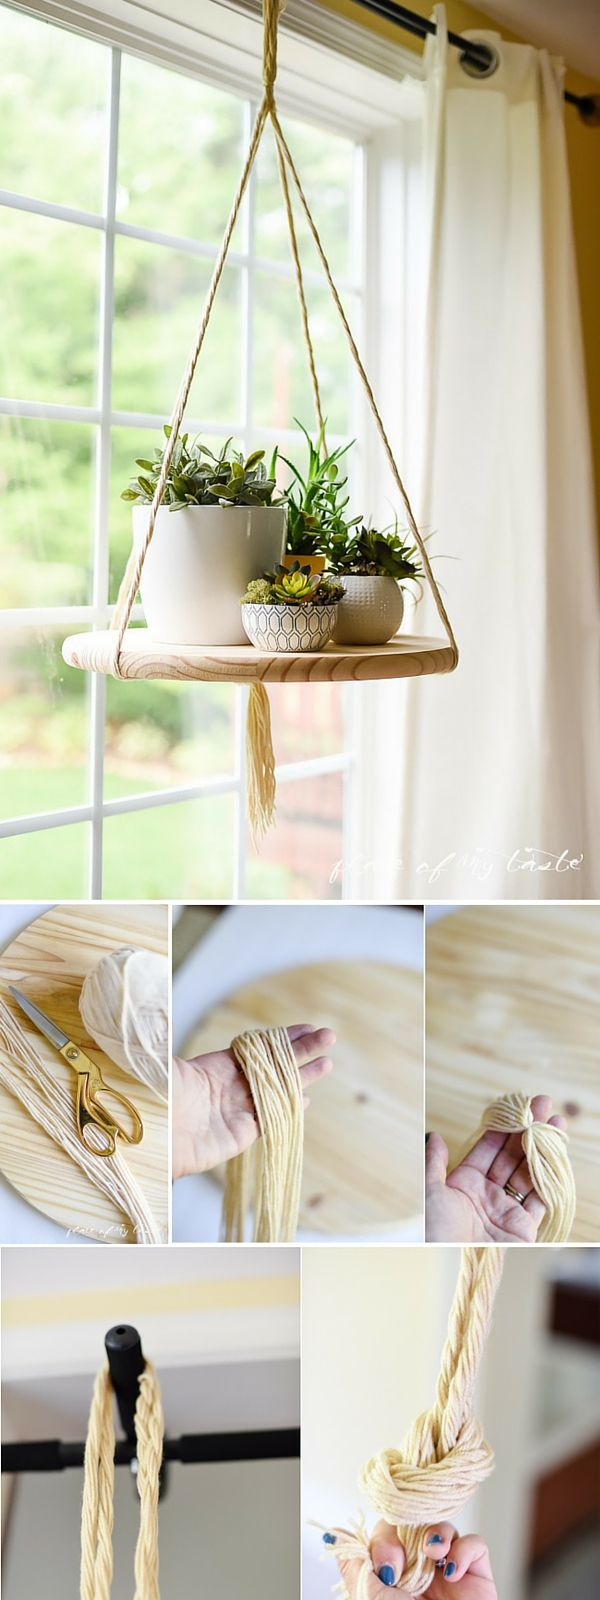 Above window decor   cool diys to turn your home decor from plain to awesome